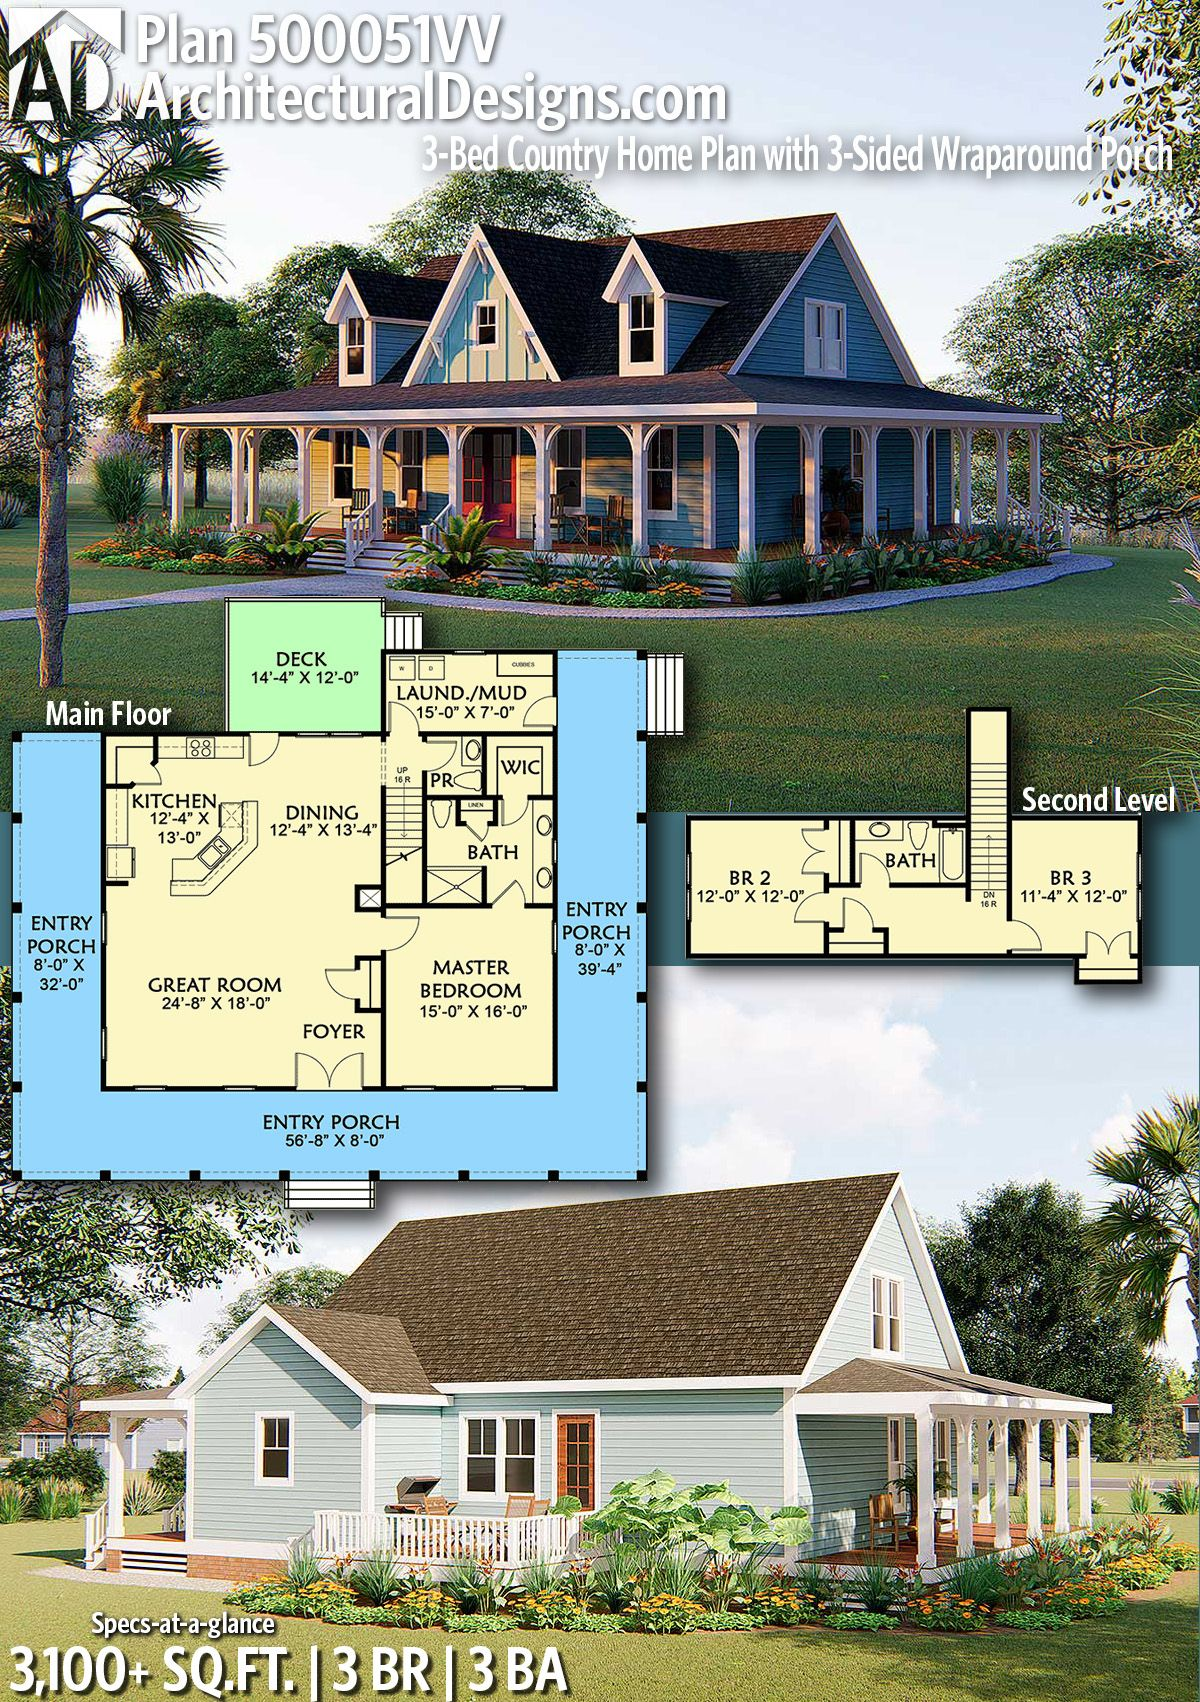 Plan 500051vv 3 Bed Country Home Plan With 3 Sided Wraparound Porch In 2021 House Blueprints Country House Plans House Plans Farmhouse